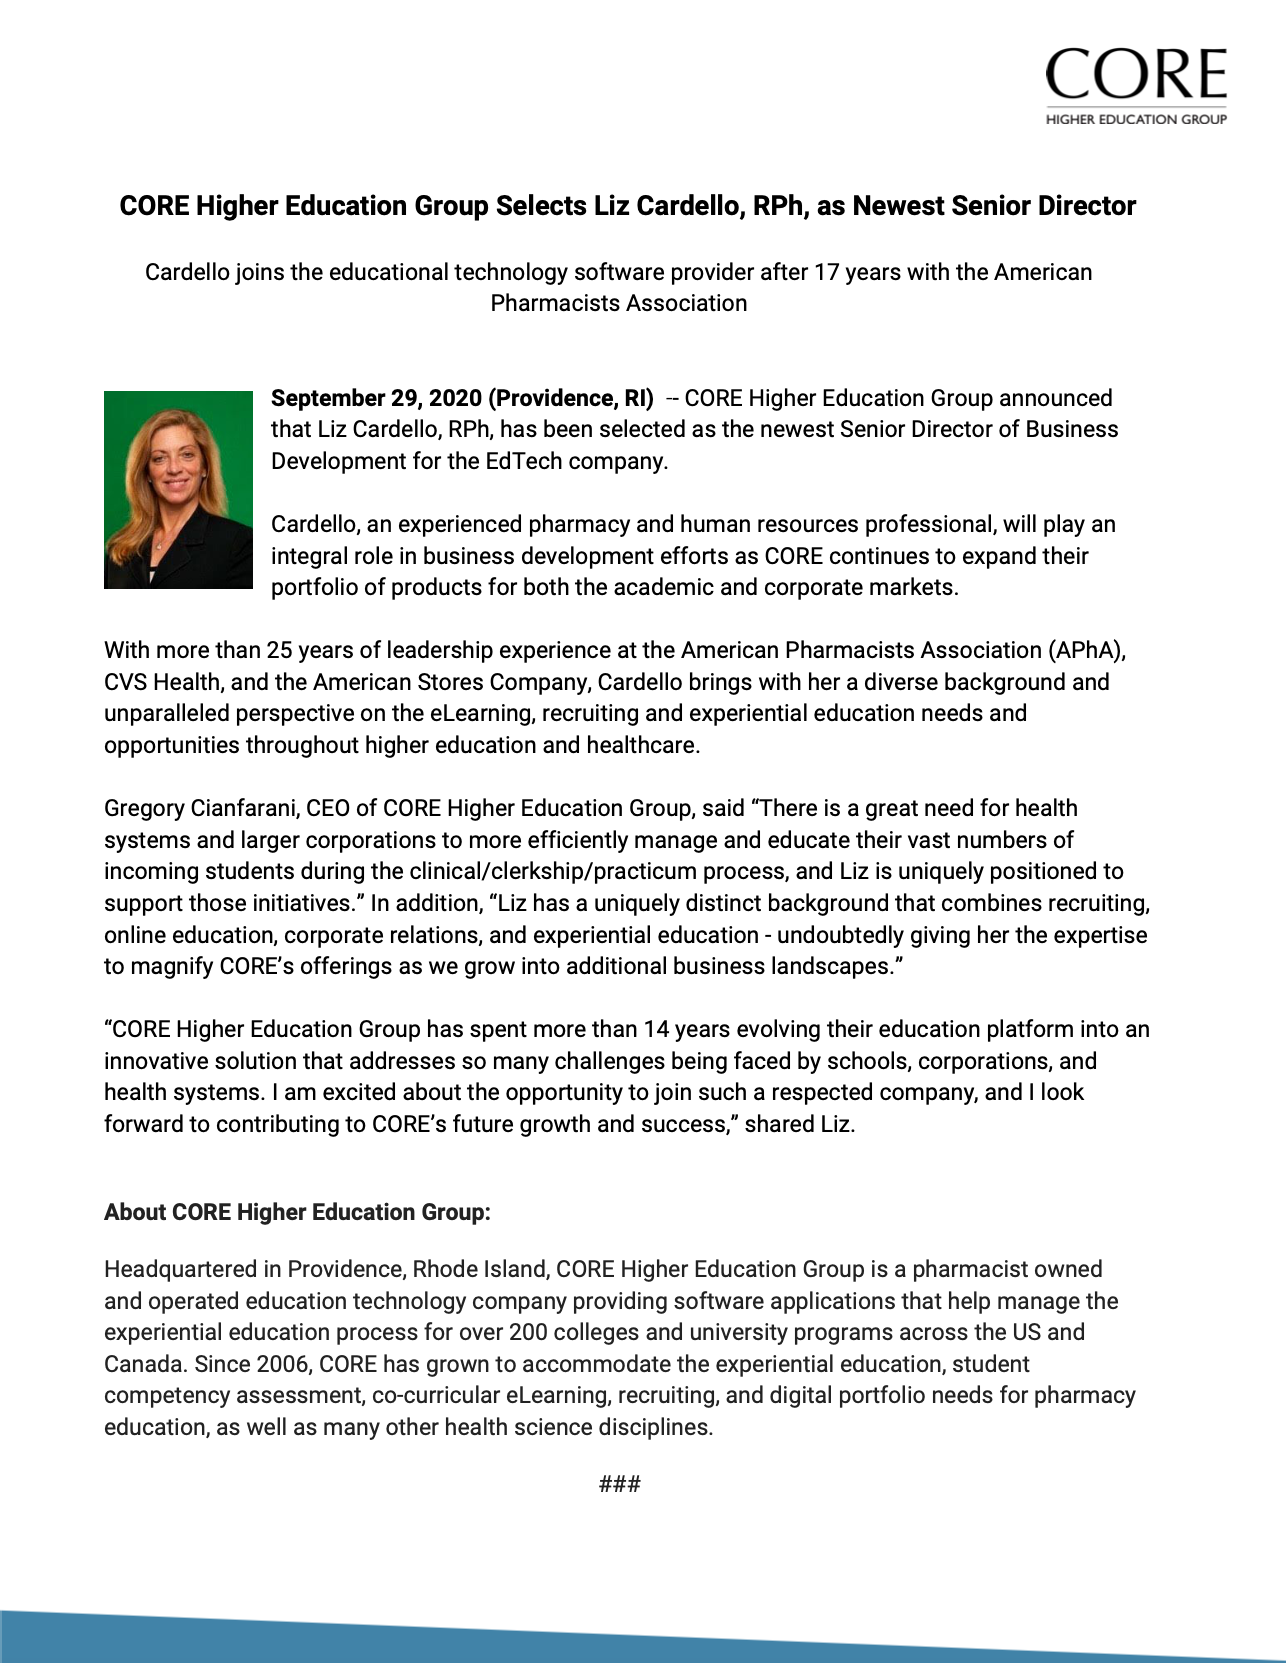 CORE Higher Education Group Selects Liz Cardello, RPh, as Newest Senior Director